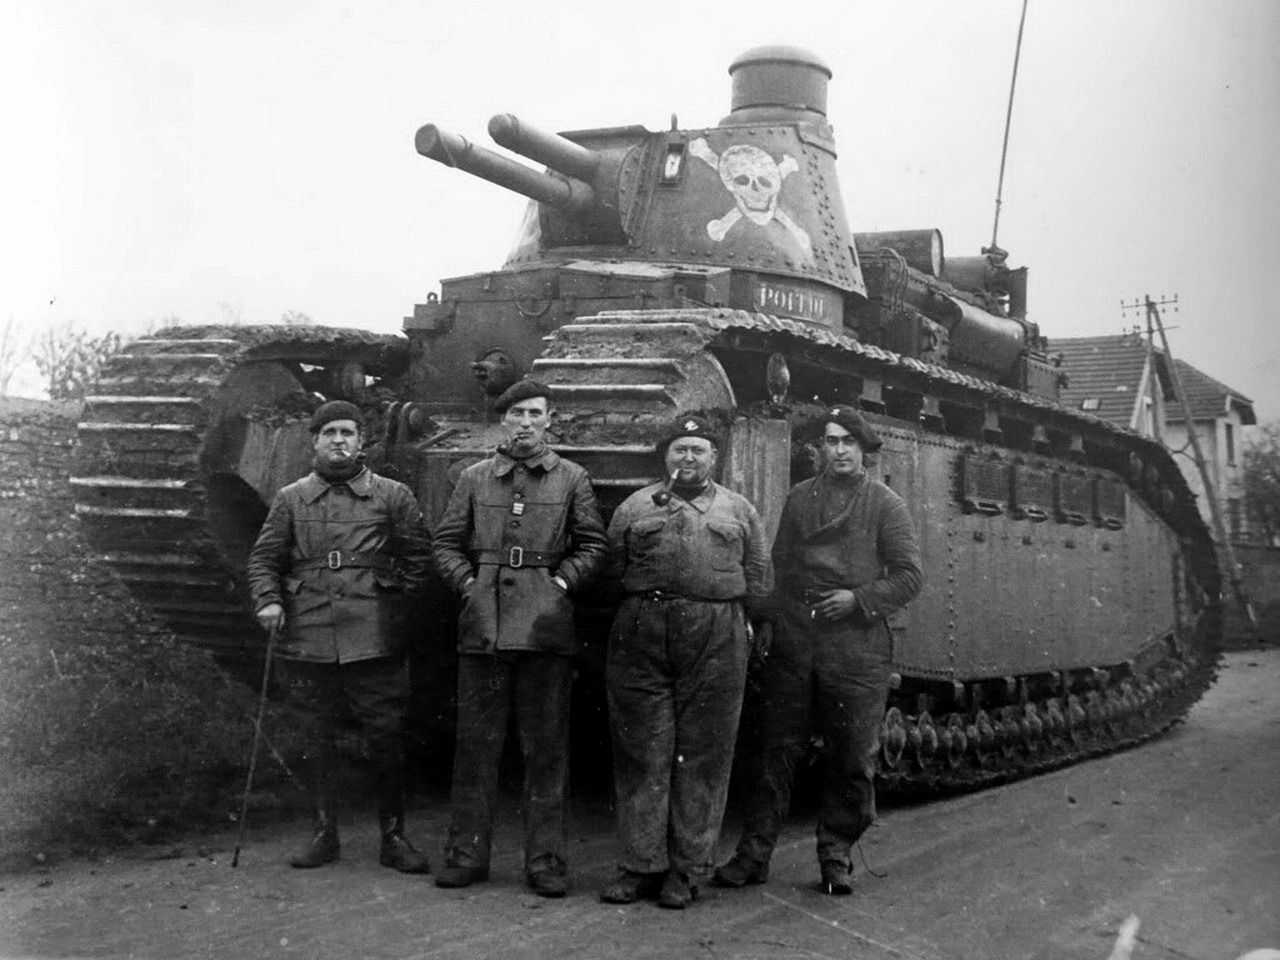 the crew of a french char 2c poitou super tank pose for the photographer against the backdrop. Black Bedroom Furniture Sets. Home Design Ideas